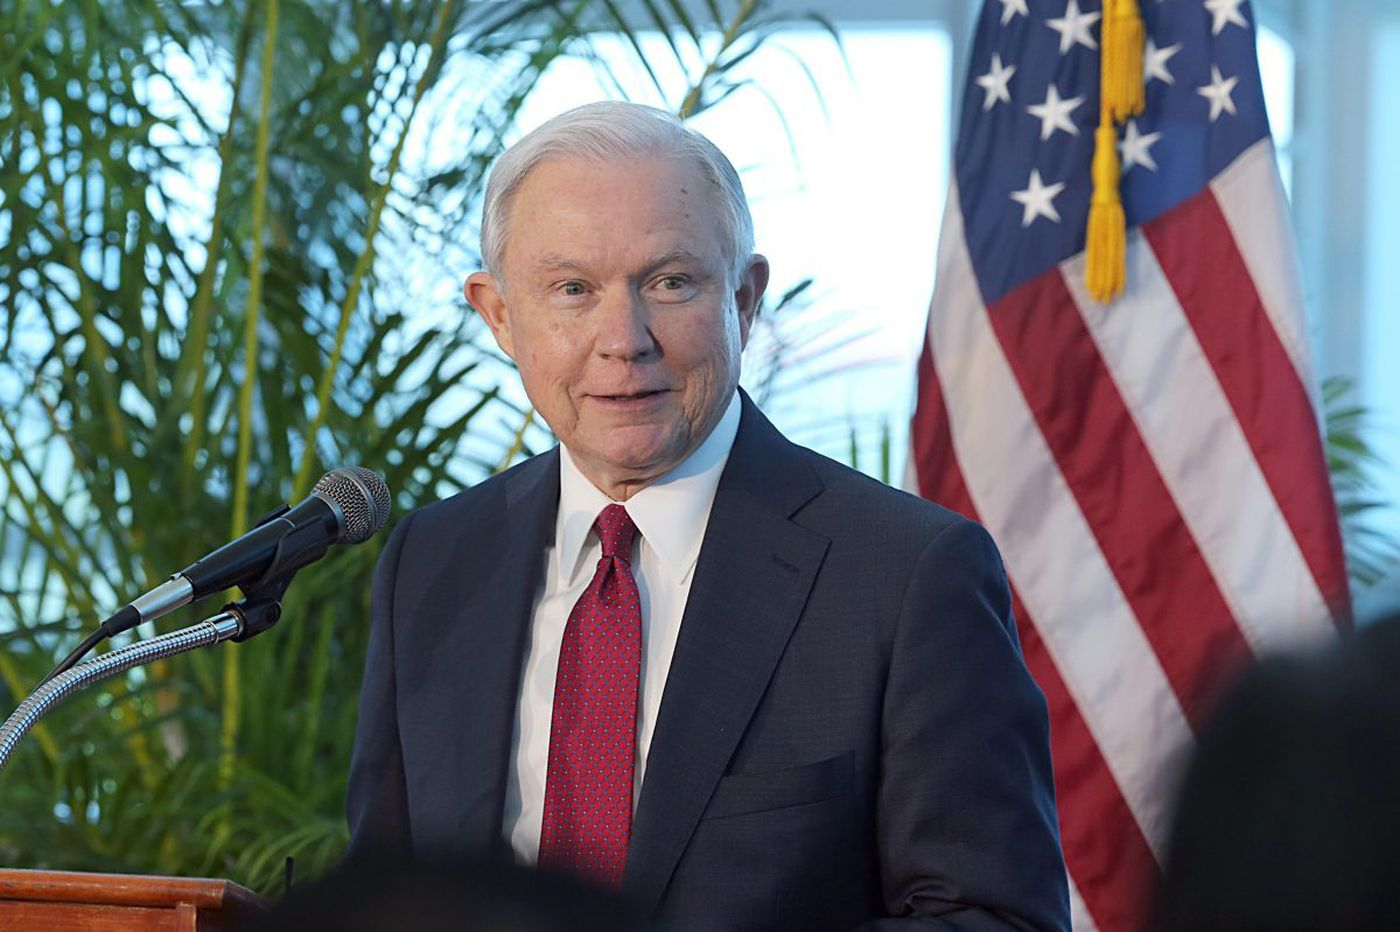 Sessions calls on US attorneys to aggressively prosecute gun buyers who lie on background checks